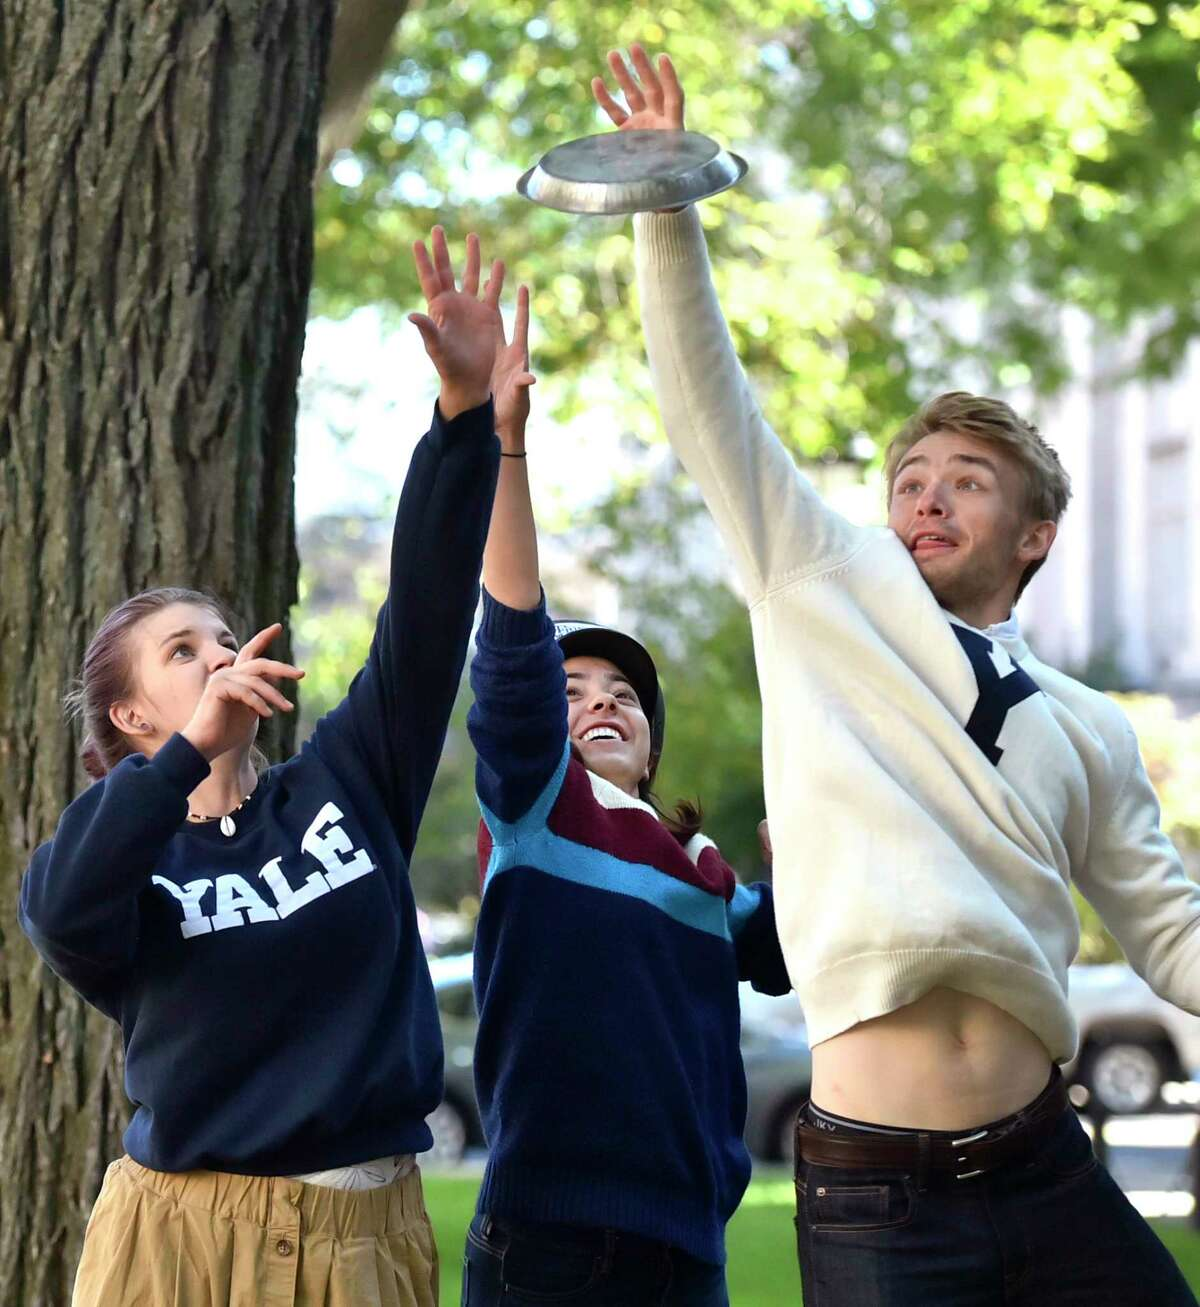 """New Haven, Connecticut - Wednesday, October 18, 2017: Yale University students Ella Schmidt, Isabelle Carson and Alec Emser of the Yale Men's and Women's Ultimate Frisbee team, left, to right, fight for control of a Frisbie's Pies pie plate Wednesday on the Yale University campus in New Haven. The pie plates were the original """"flying discs""""."""